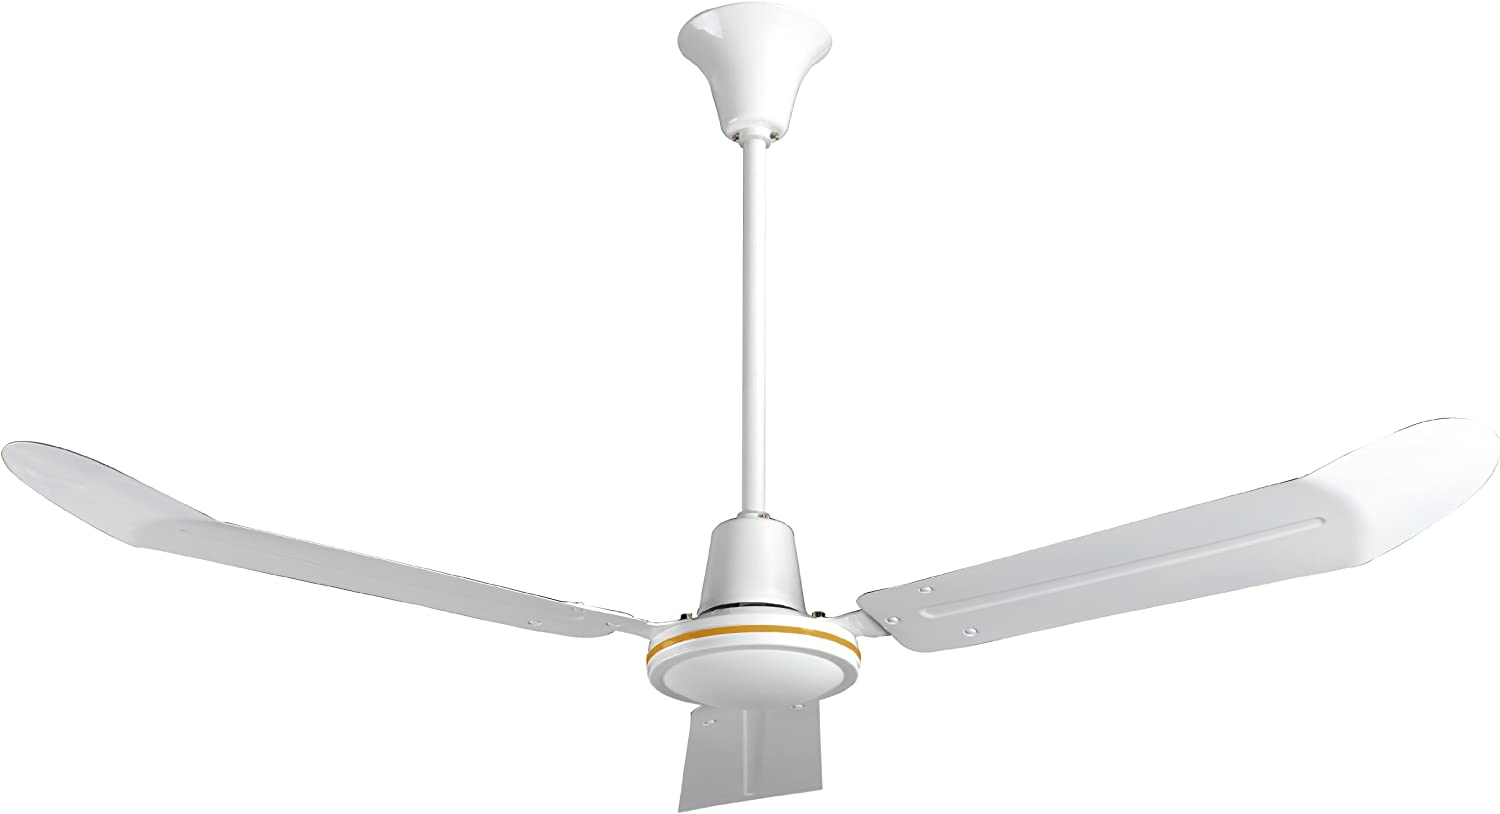 60 Inch White Ves Industrial Garage Ceiling Fan Forward Reverse With 18 Inch Downrod For Indoor Accessories Tools Home Improvement Sek Pro De